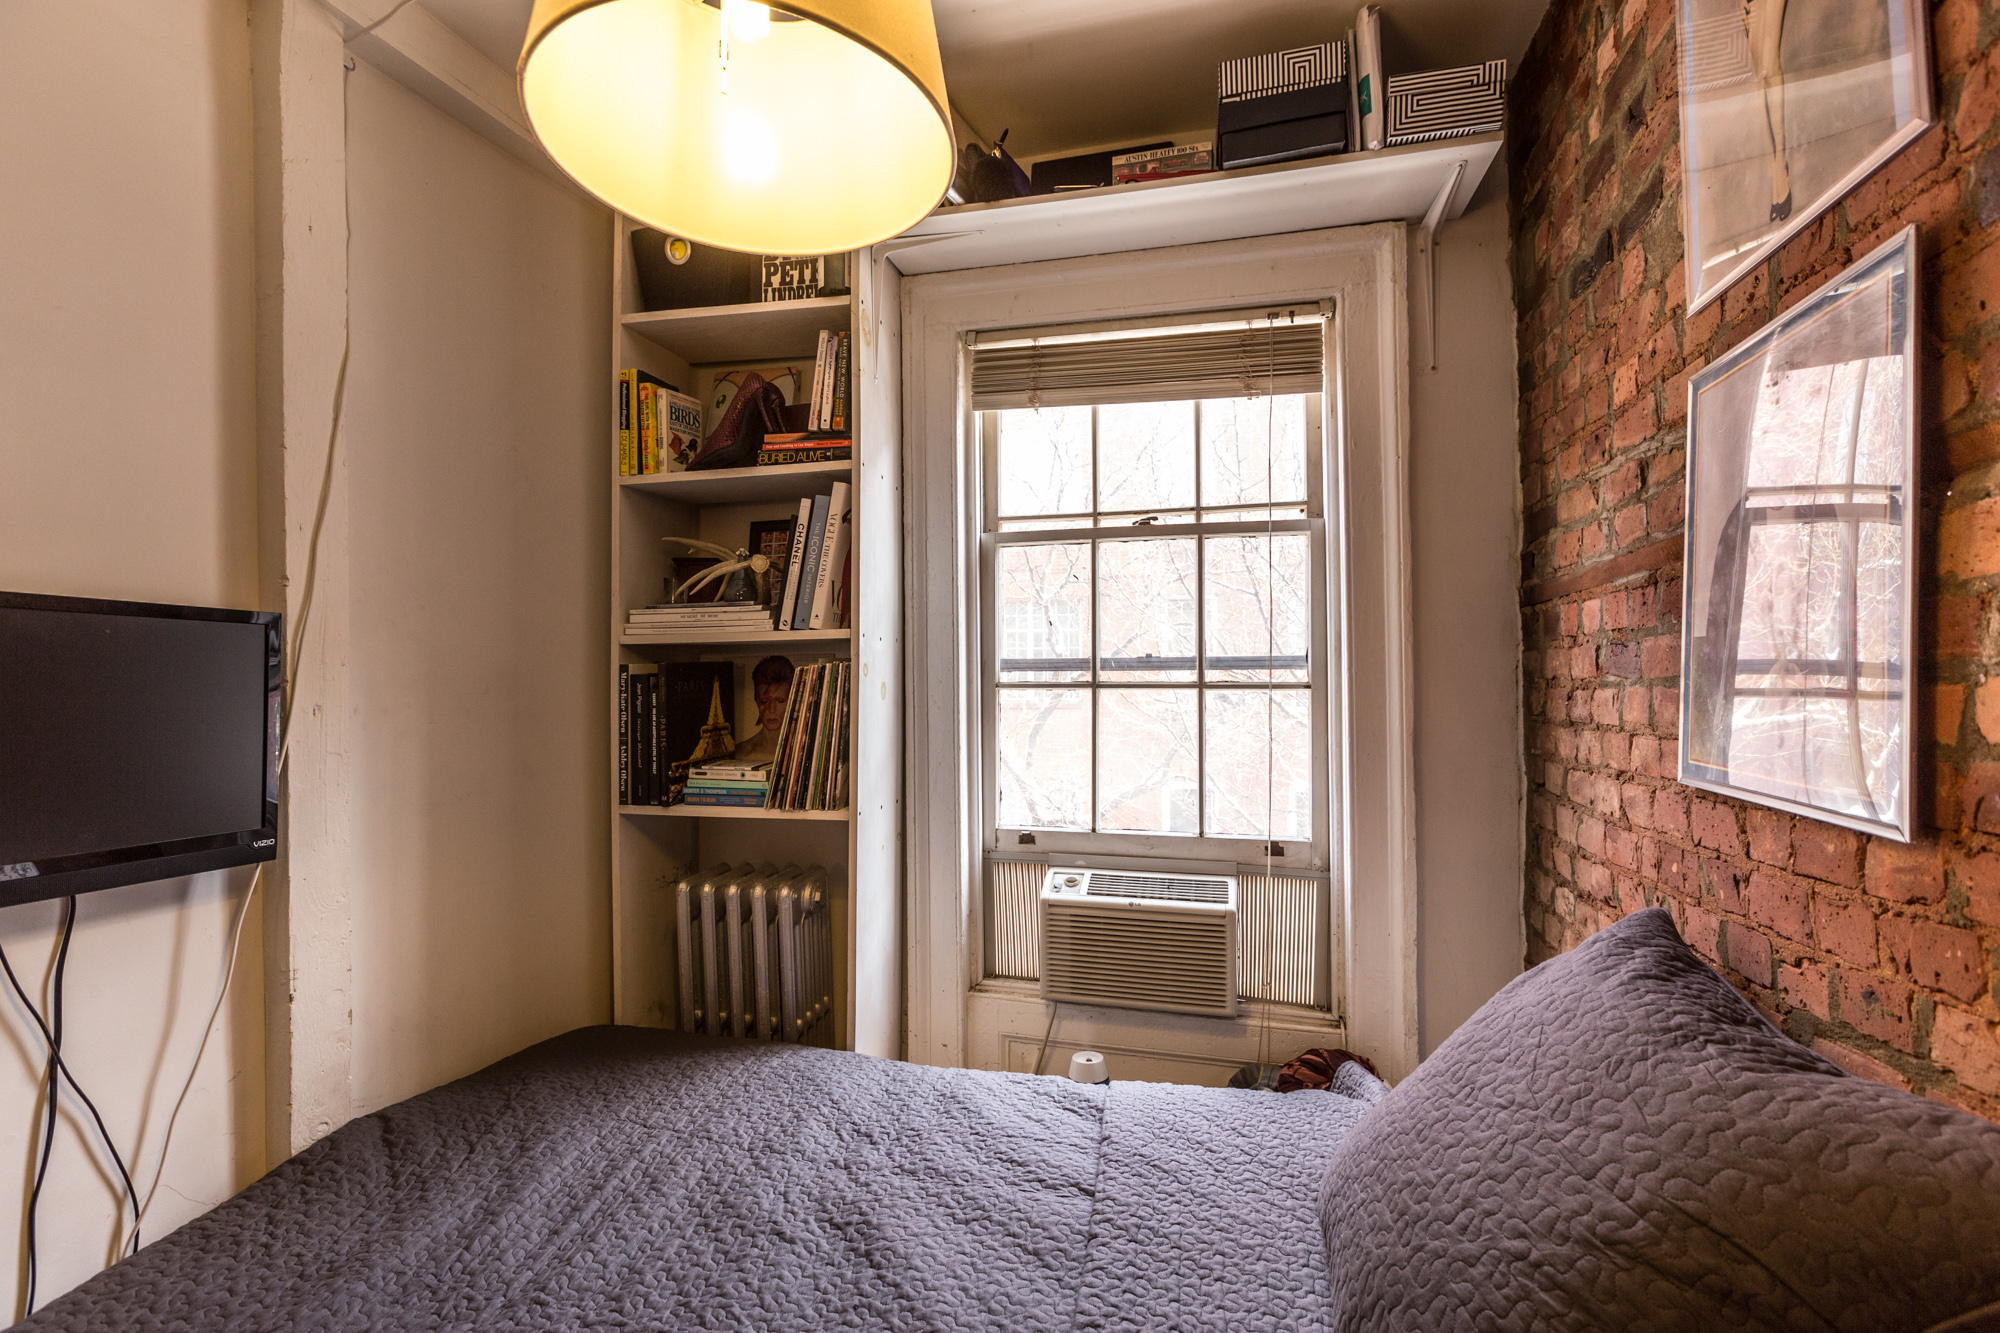 How one new yorker lives comfortably in 90 square feet for 100 sq ft room design